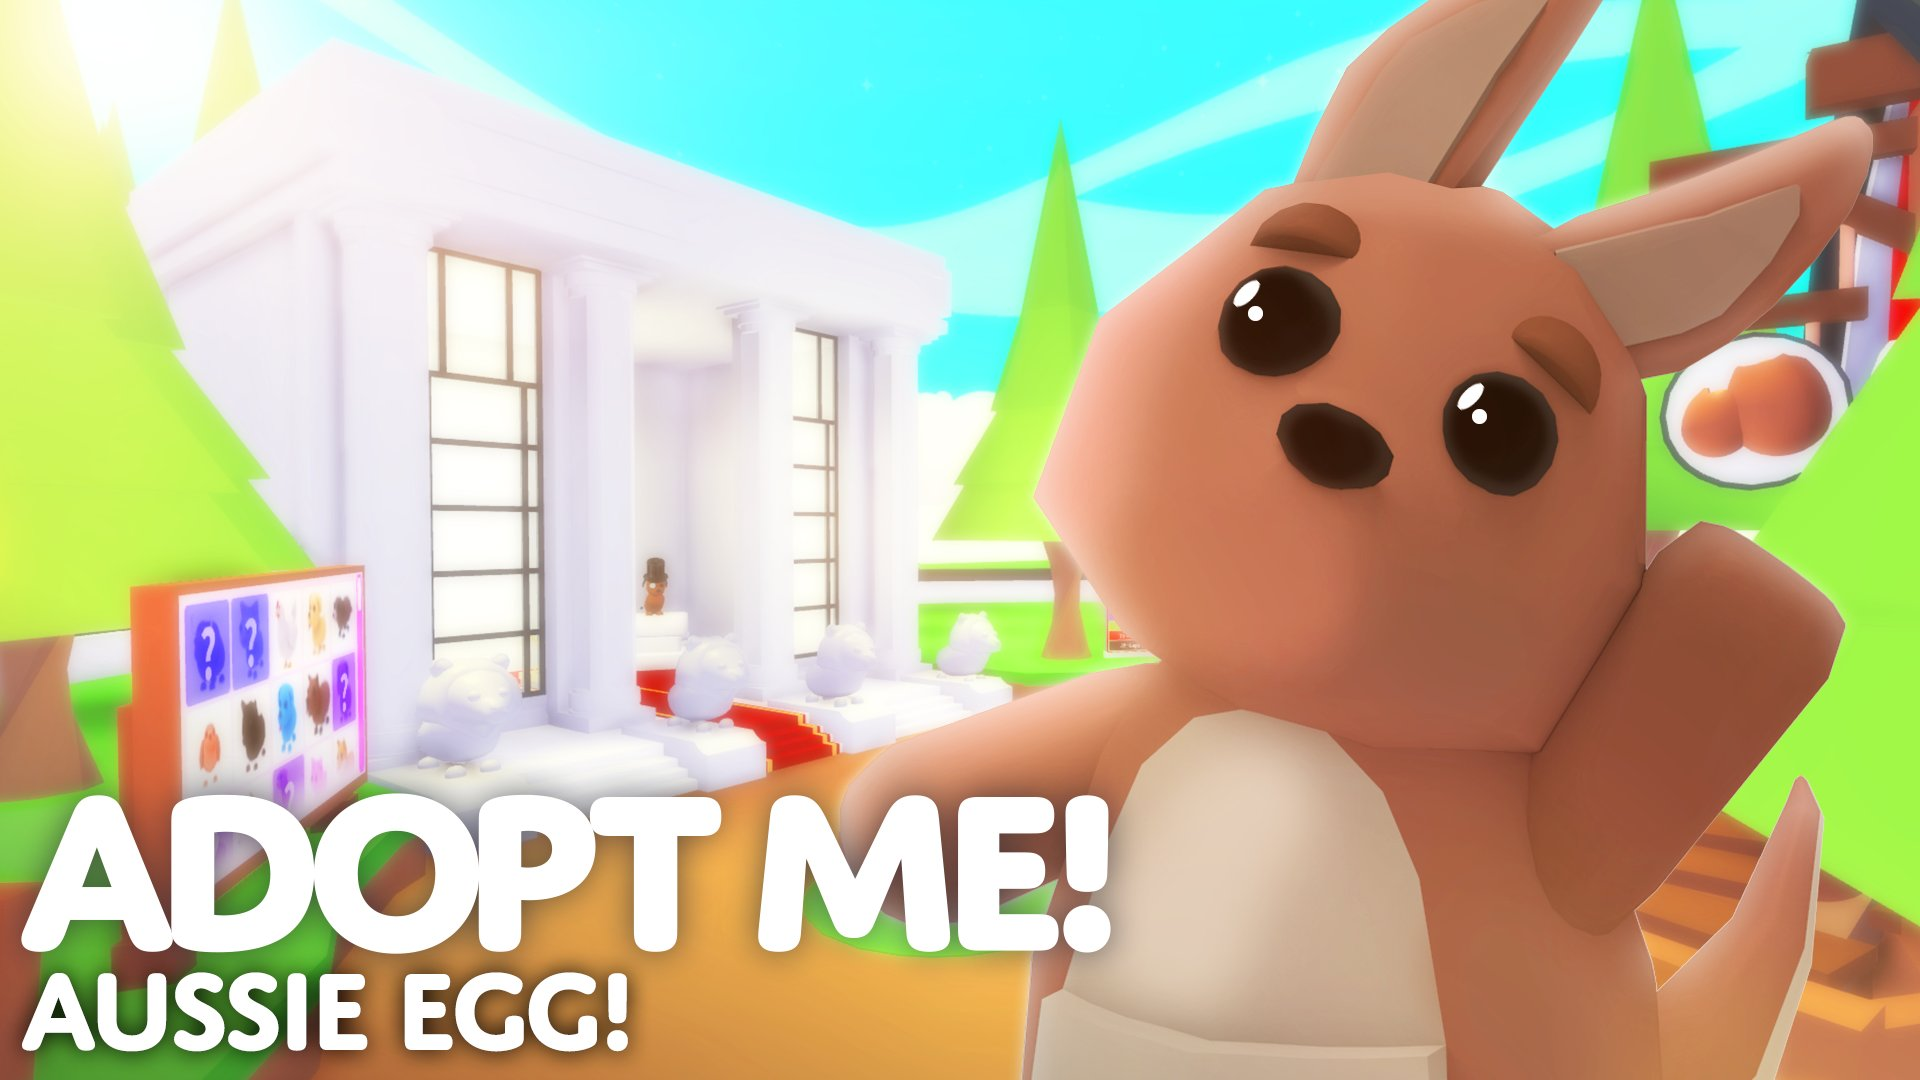 Cool Backgrounds Roblox Adopt Me Adopt Me On Twitter Aussie Egg Update Get The New Egg From The Gumball Machine And Hatch 1 Of 8 New Pets Play Now Https T Co Q5ew48c02n Https T Co Mmgkzjwib2